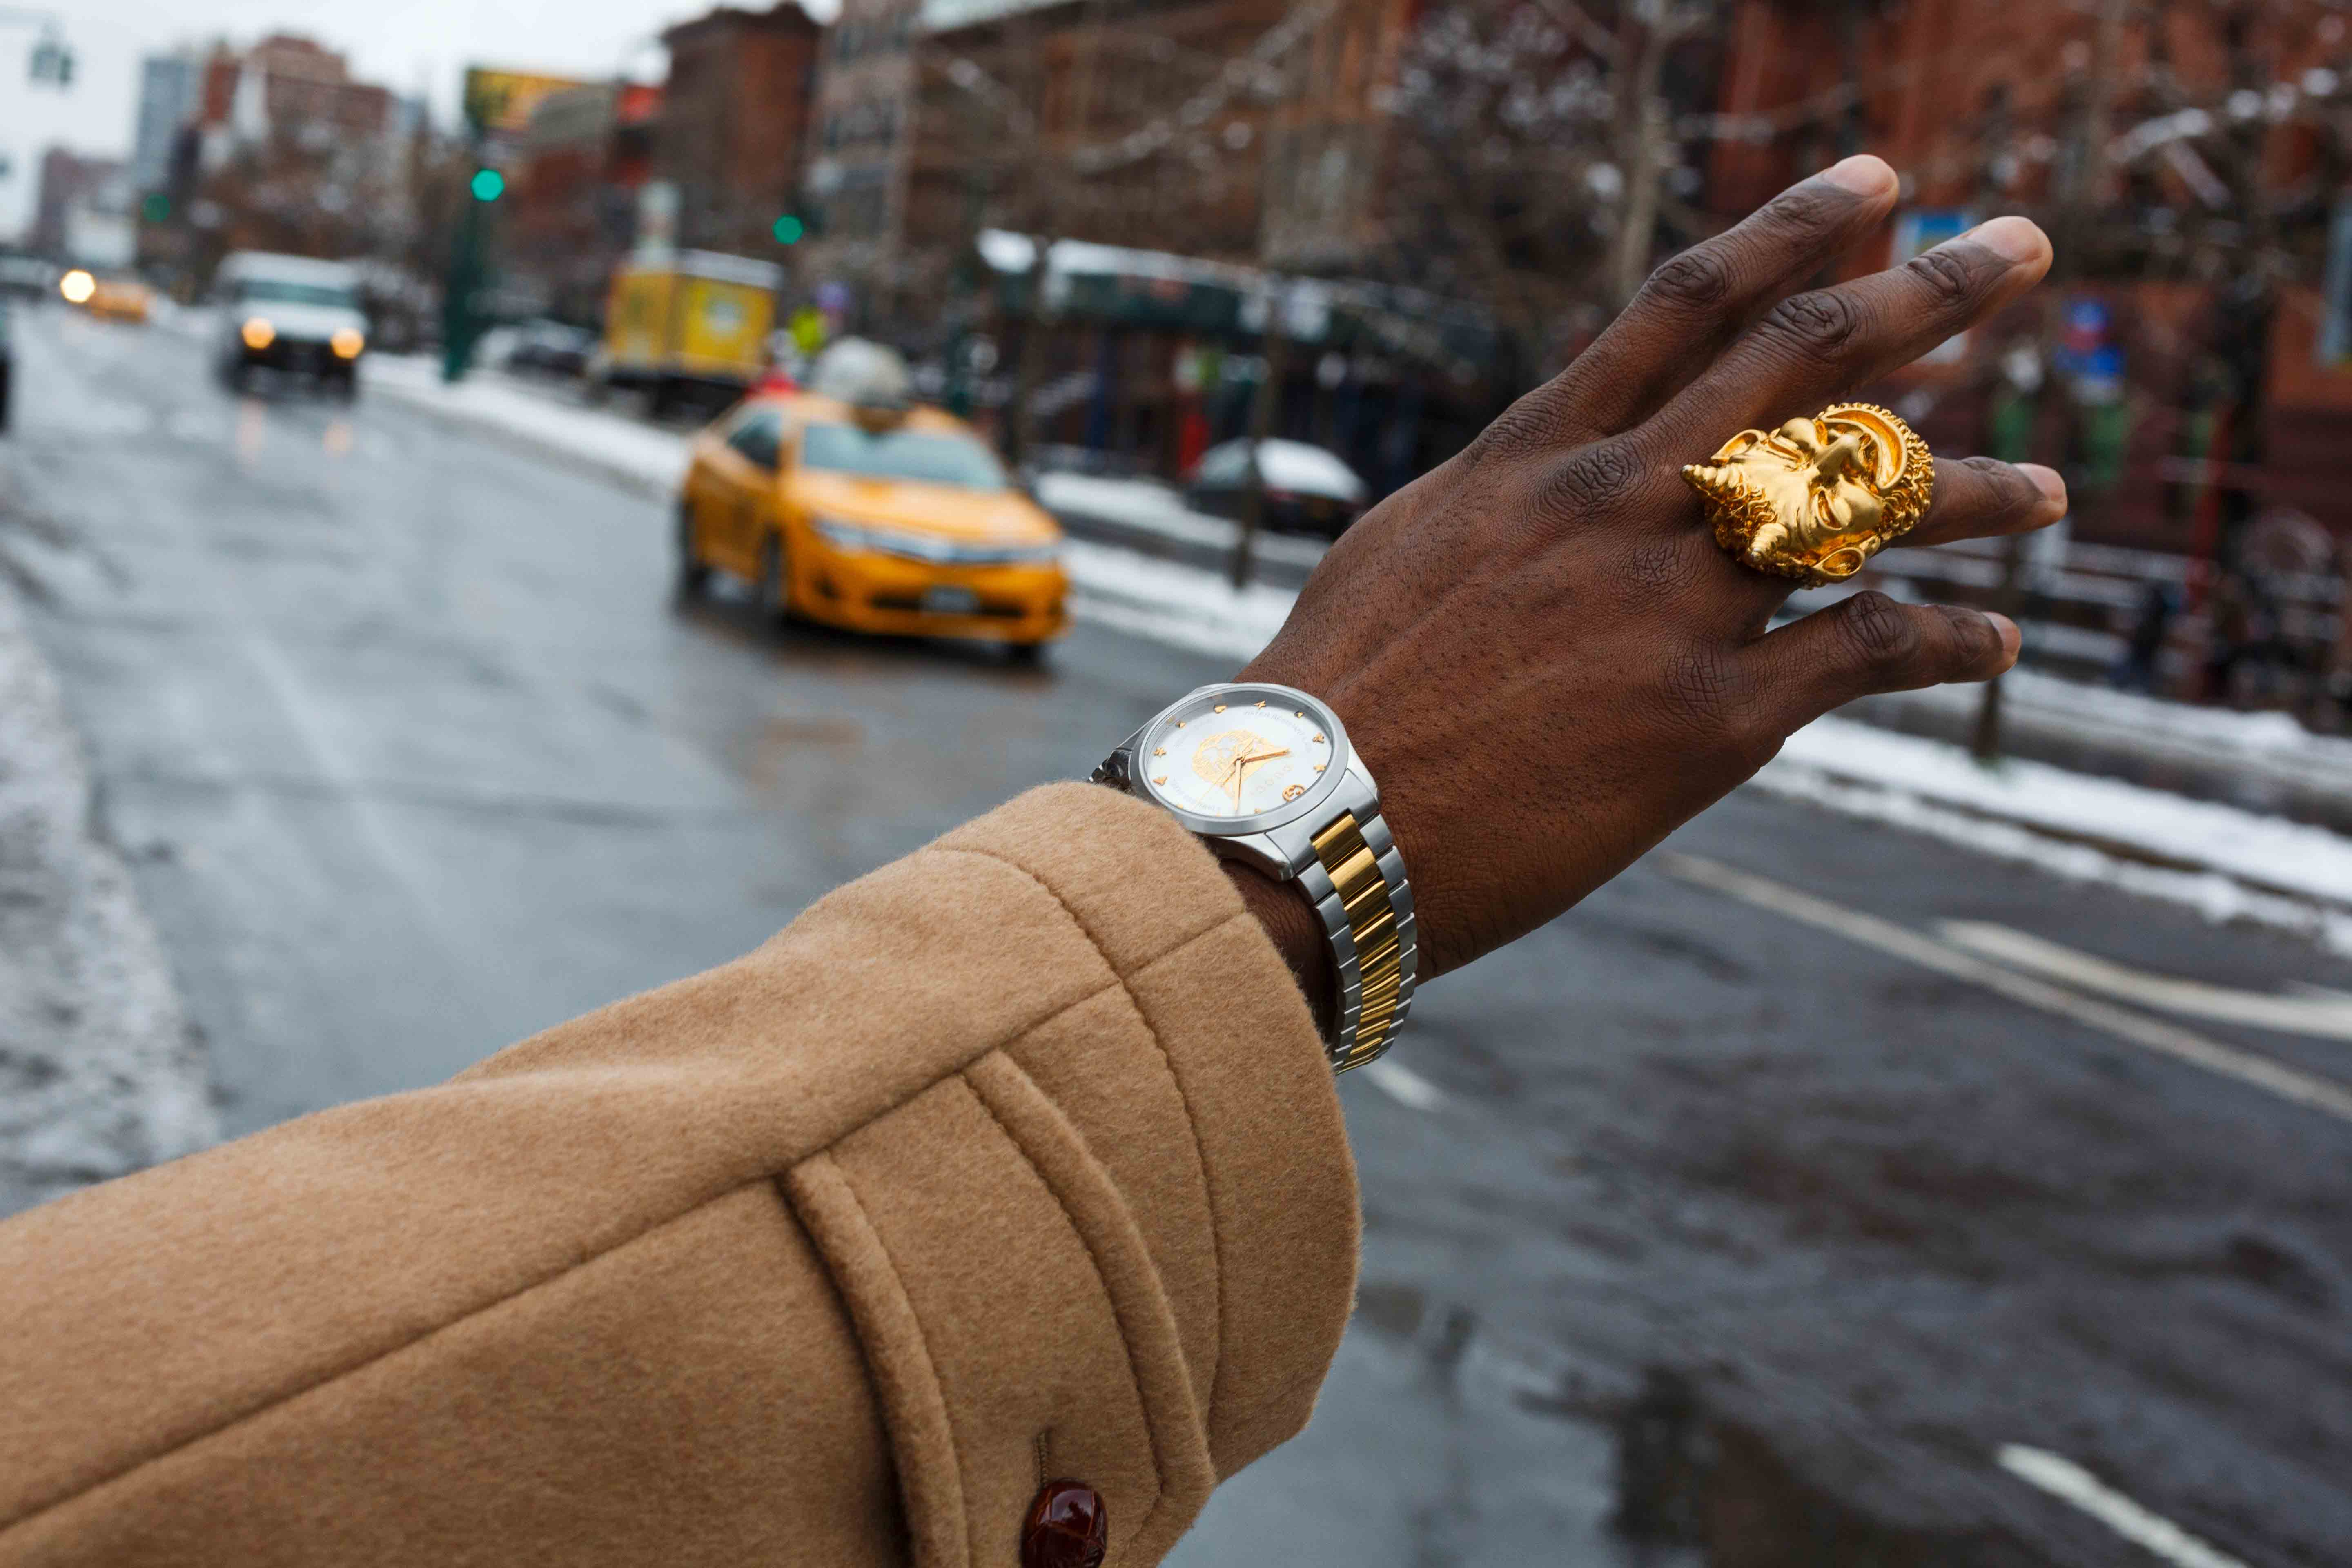 Visual from the new Gucci campaign, #TimeToParr photographed by Martin Parr. In Harlem, near the Dapper Dan atelier.